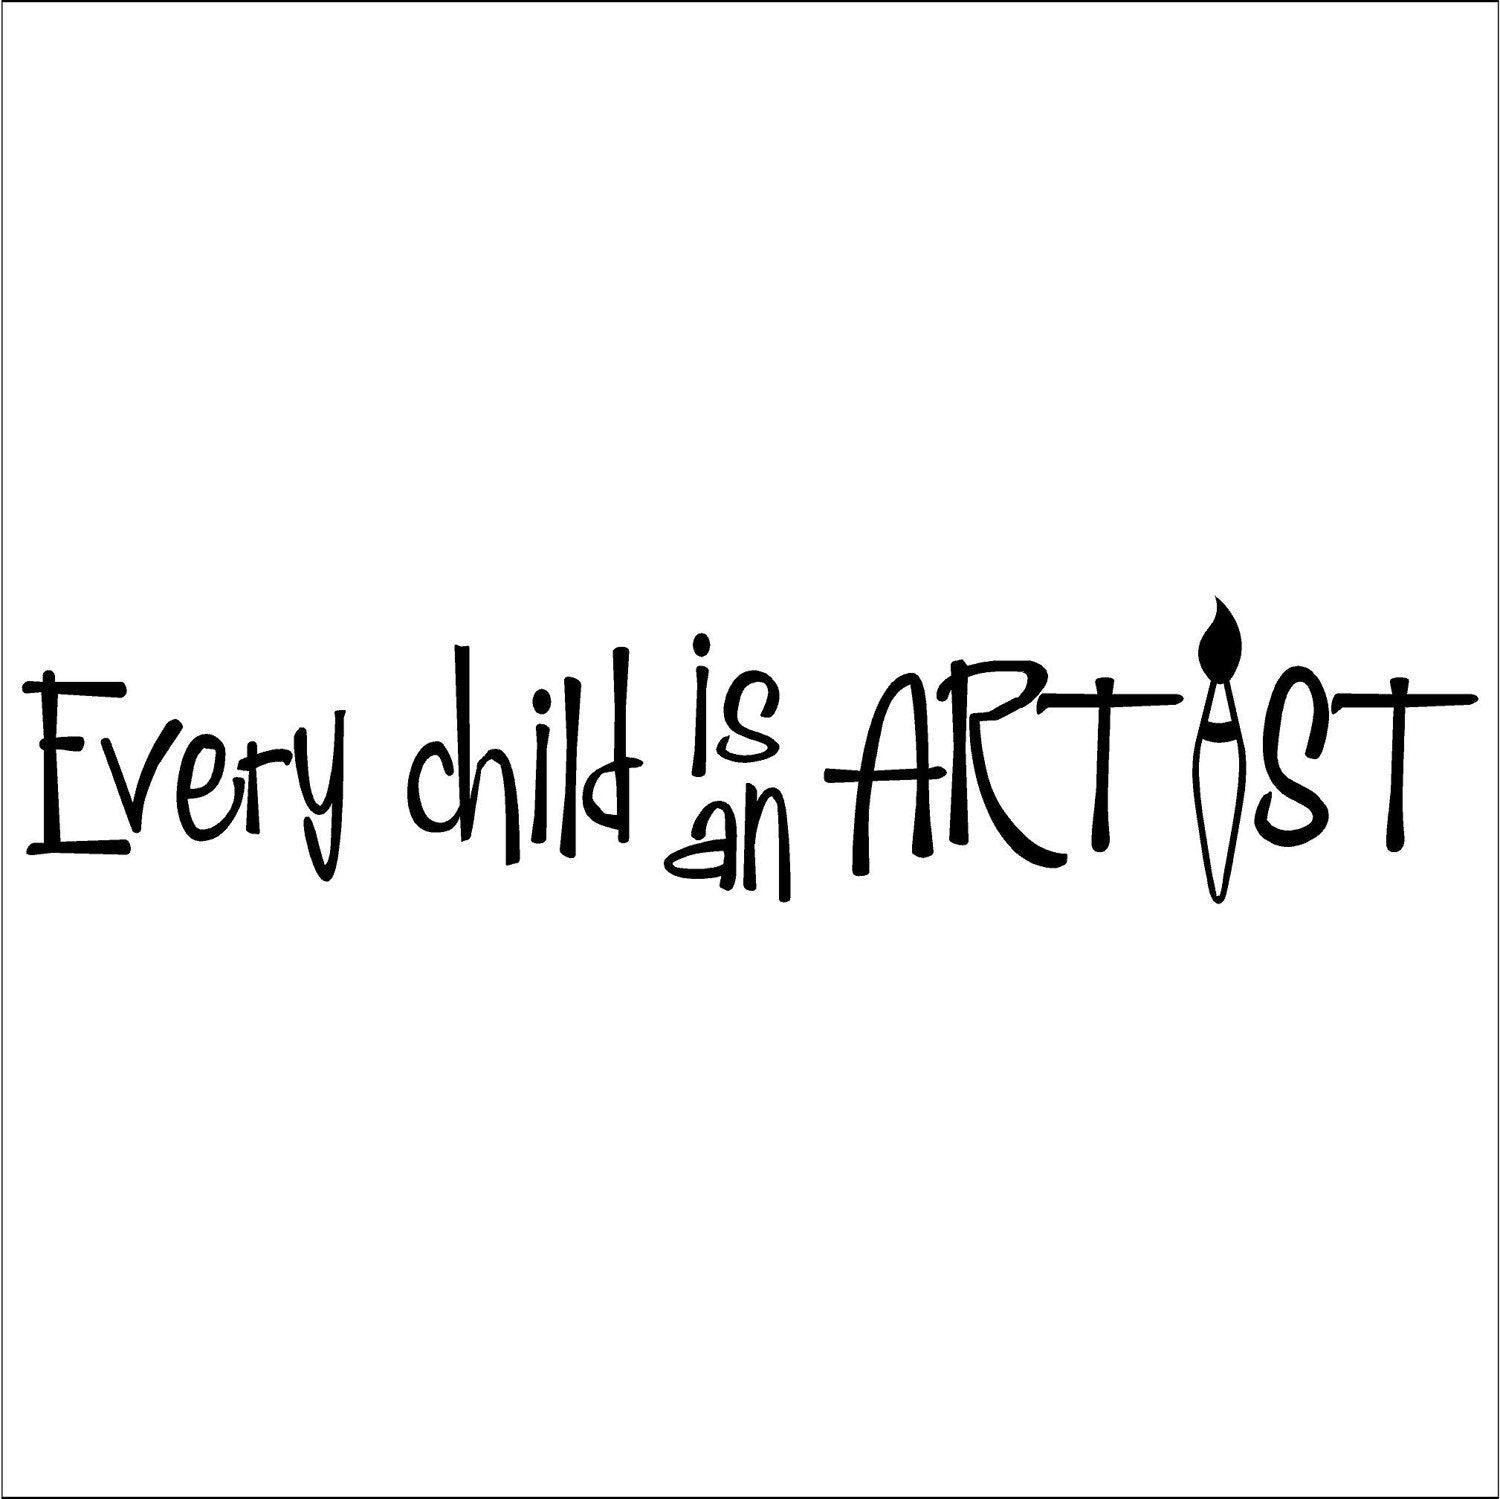 Every Child Is An Artist Vinyl Lettering Art Decal Wall